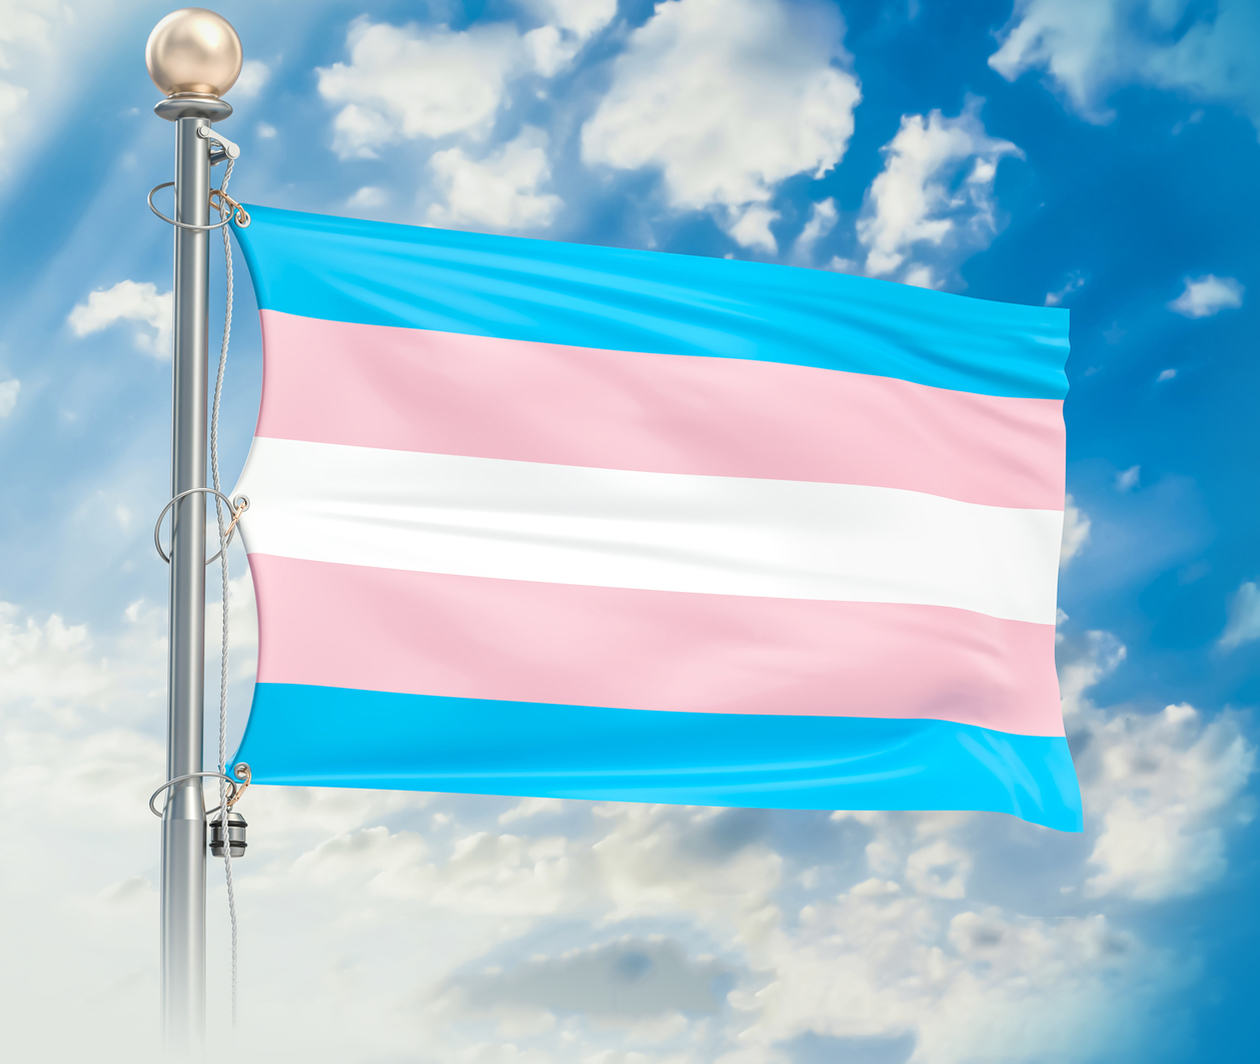 Understanding Gender Identity: Trans People in the Workplace